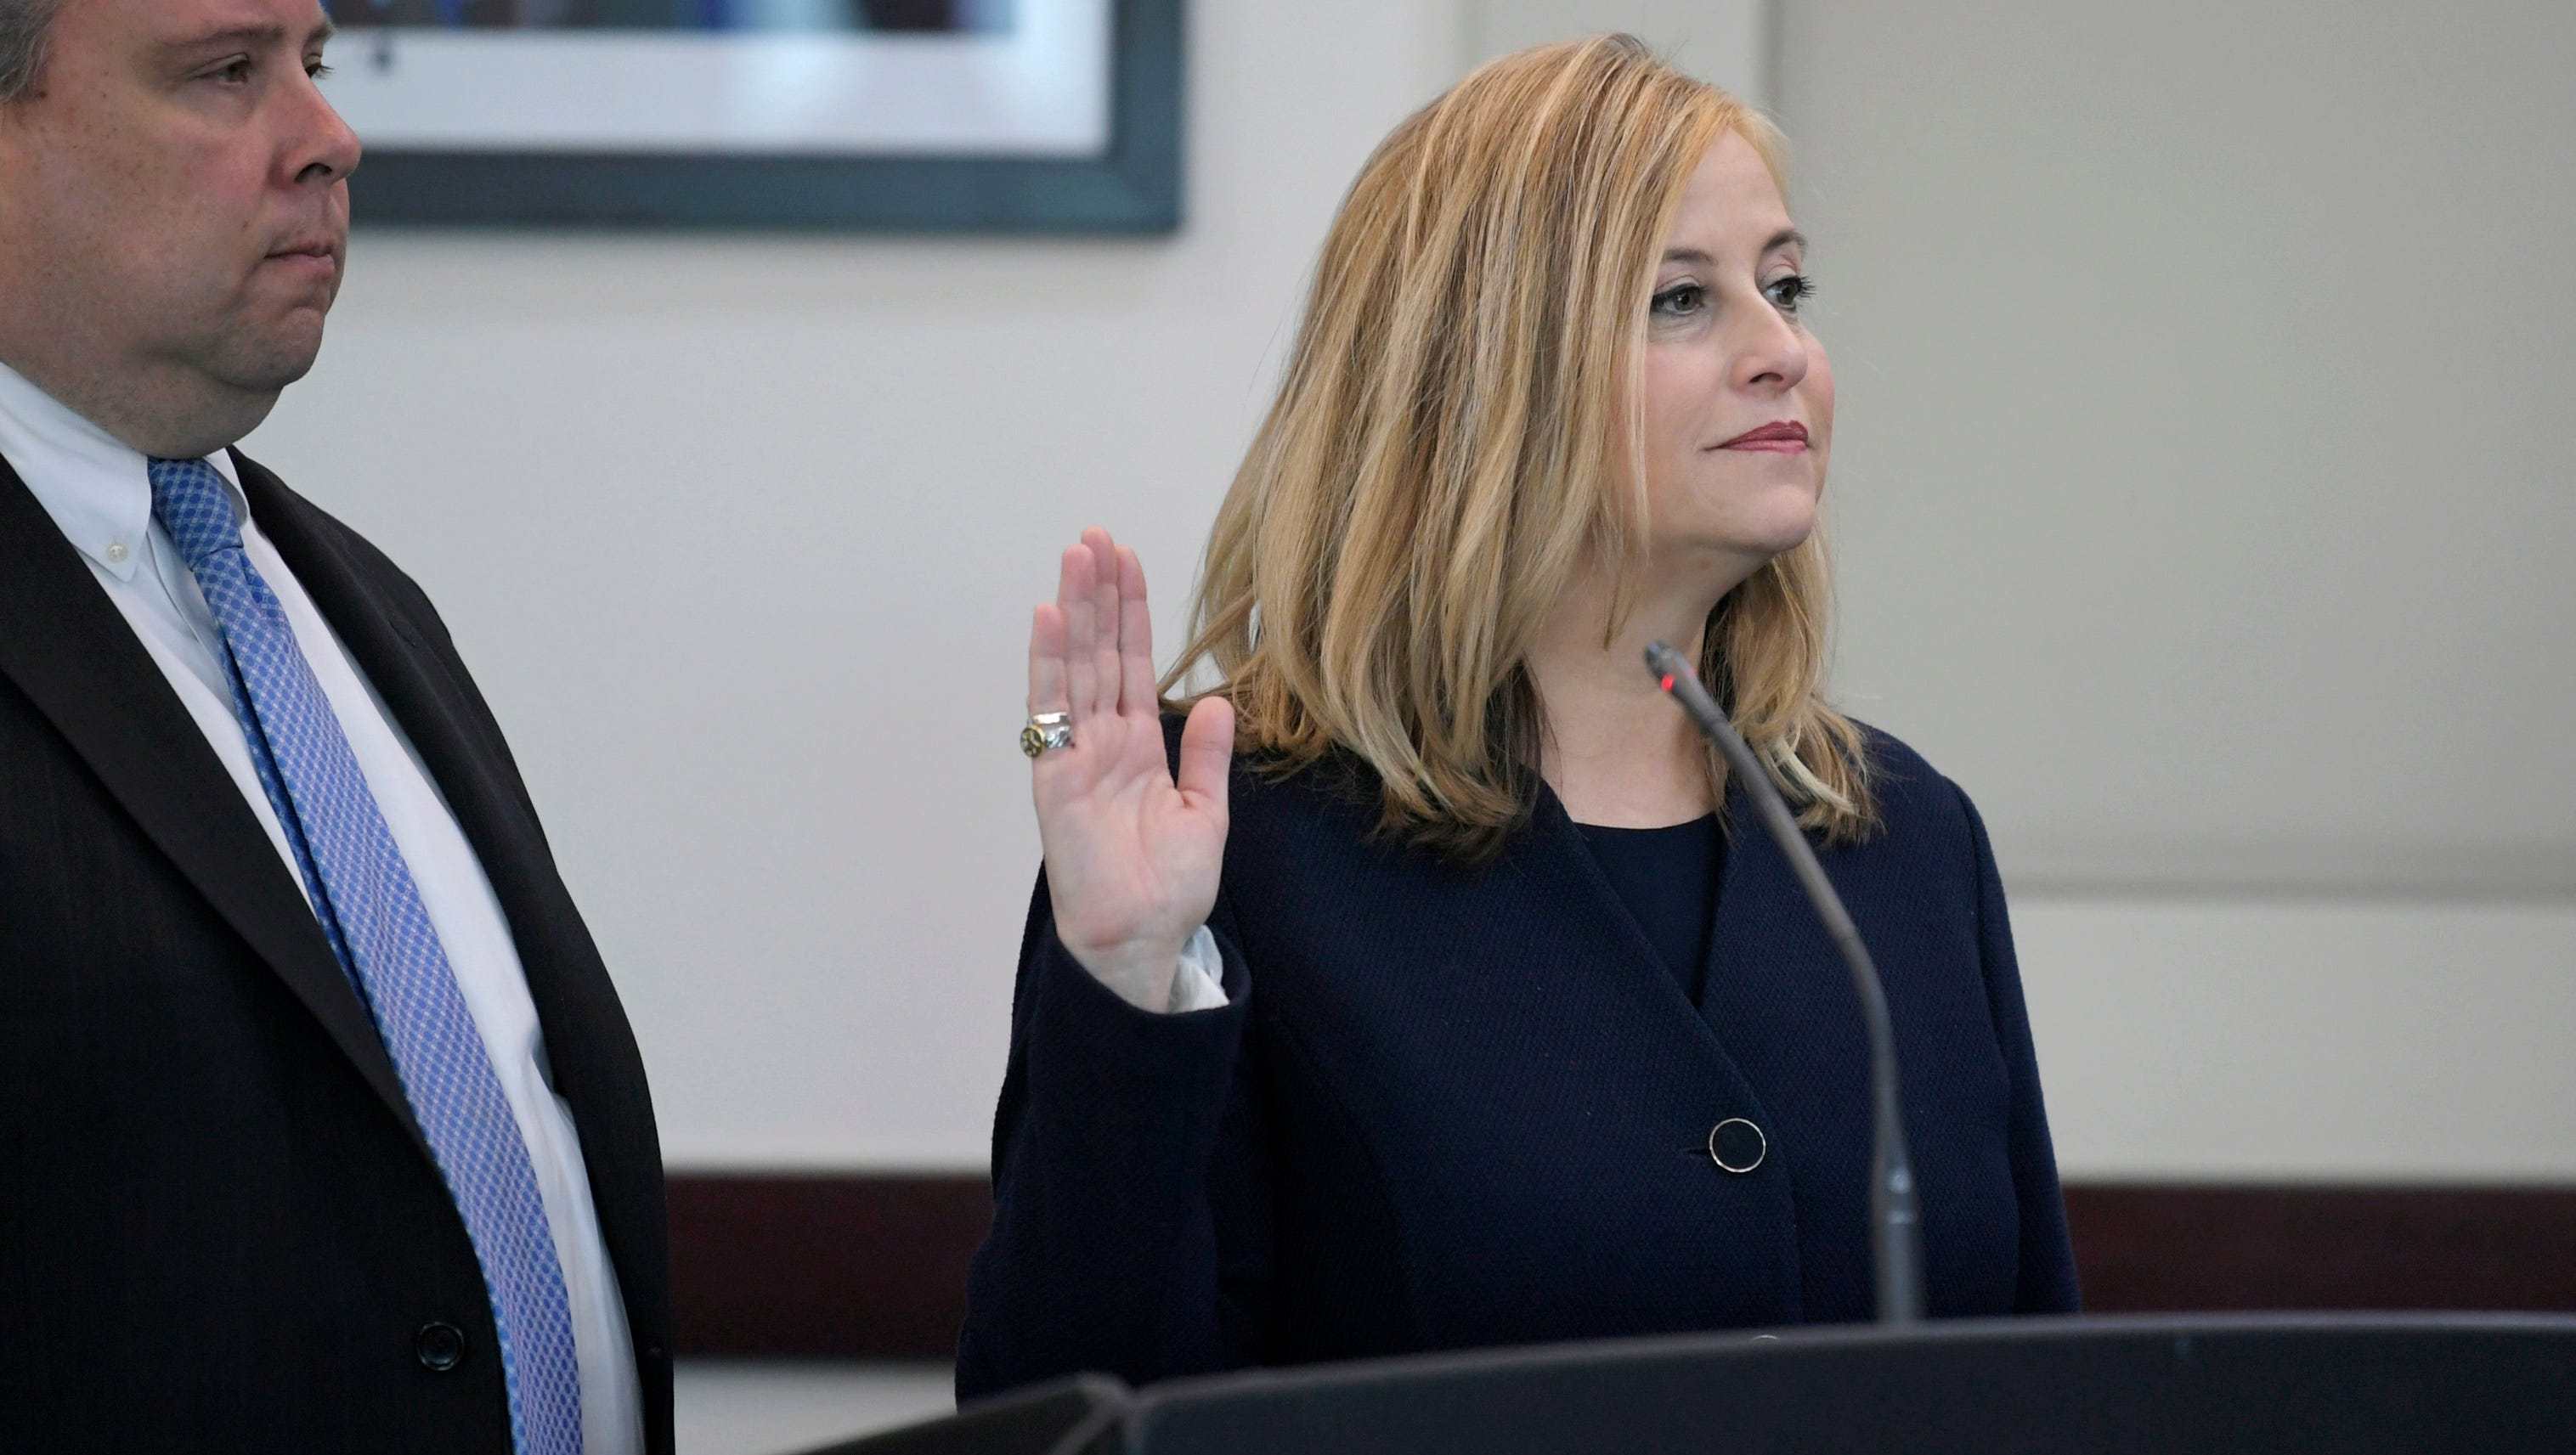 Nashville Mayor Megan Barry resigns: 5 things to know